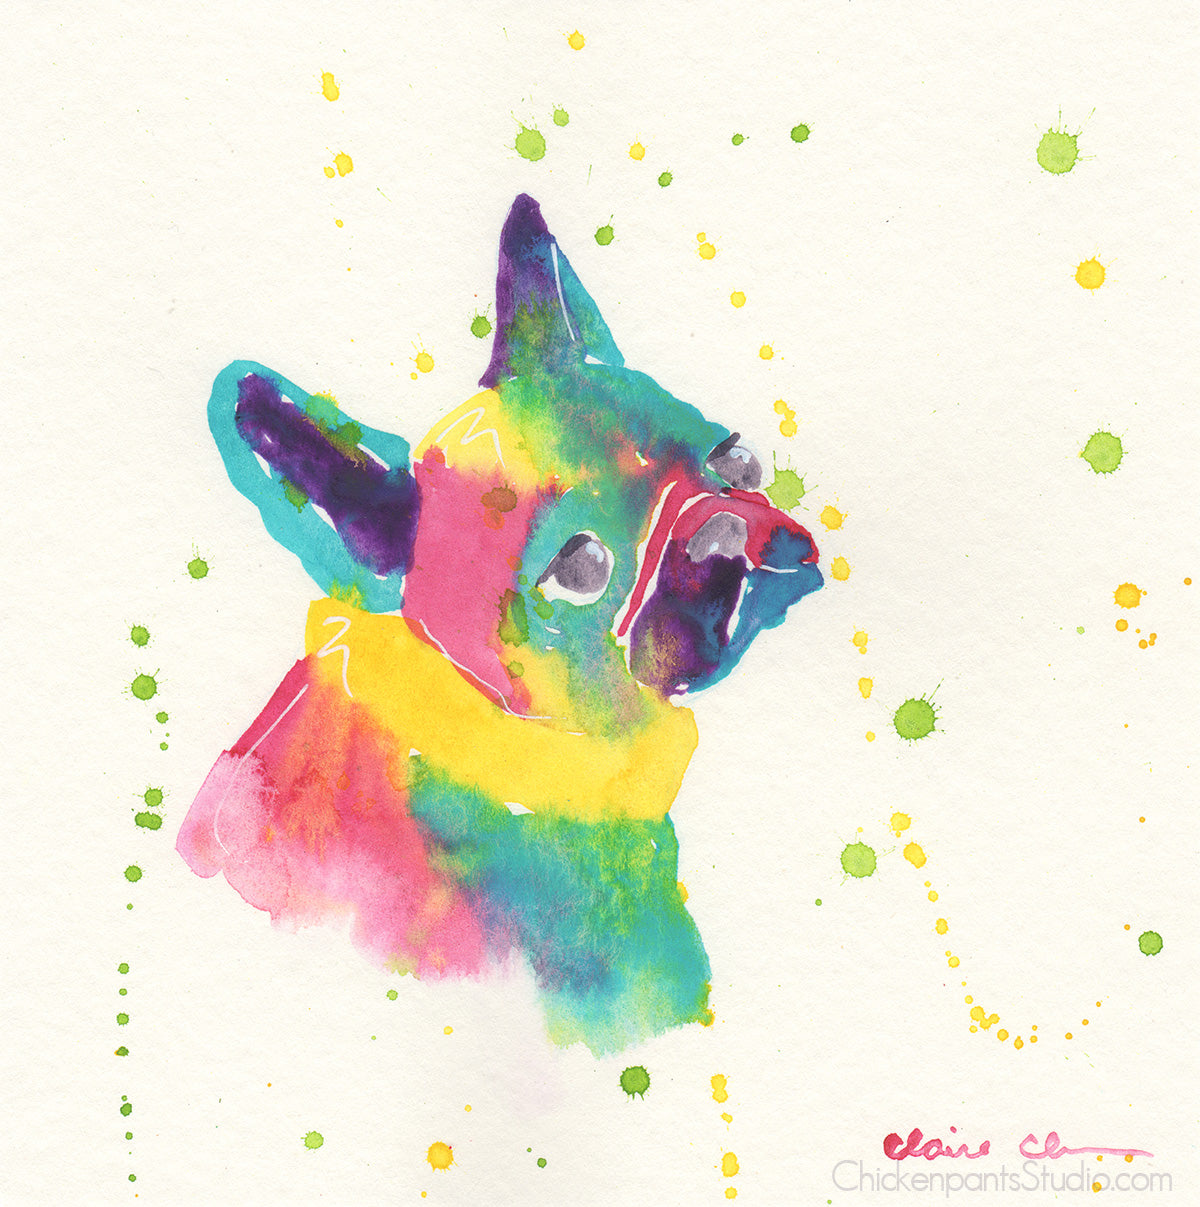 Lost In Thought - Original French Bulldog Painting